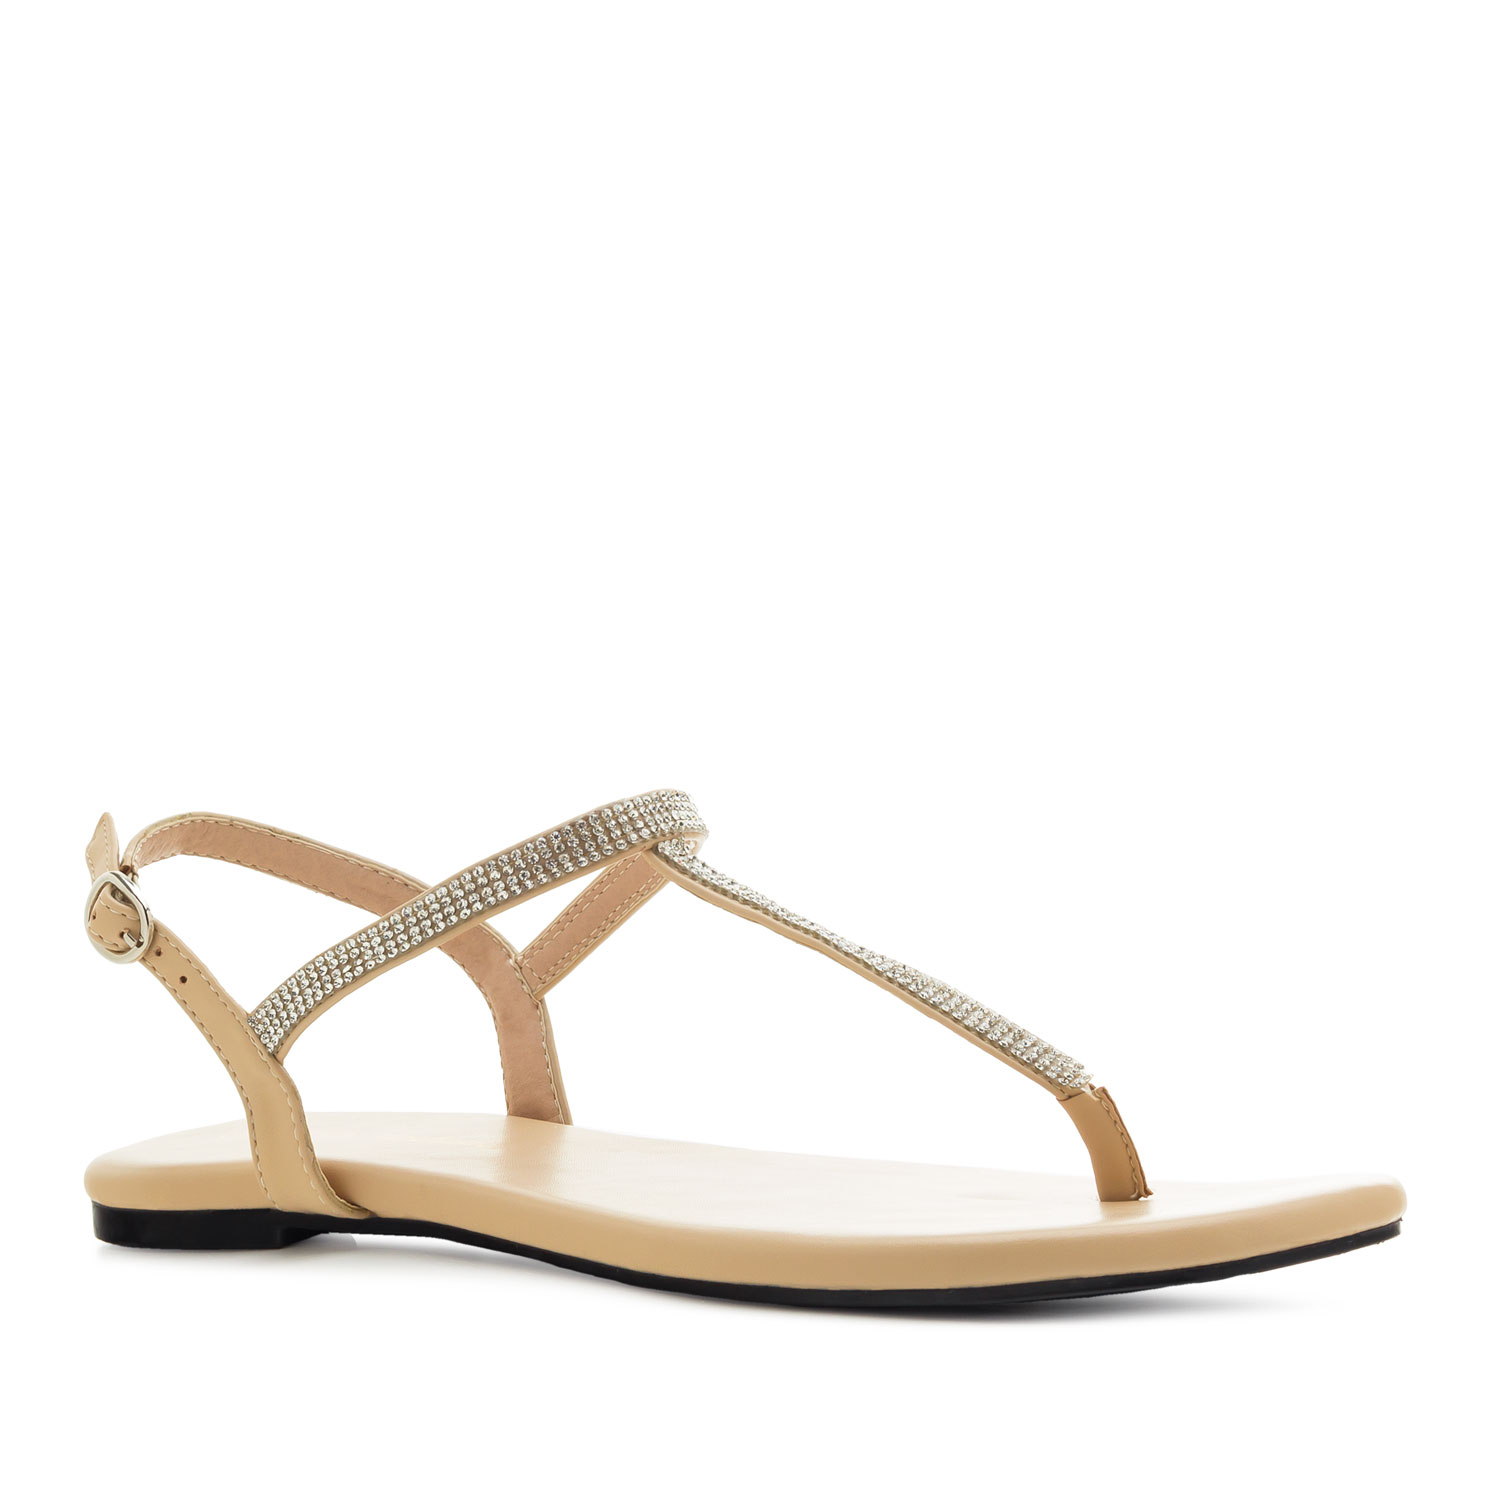 T-Bar Flat Sandals in Beige faux Leather with Strass